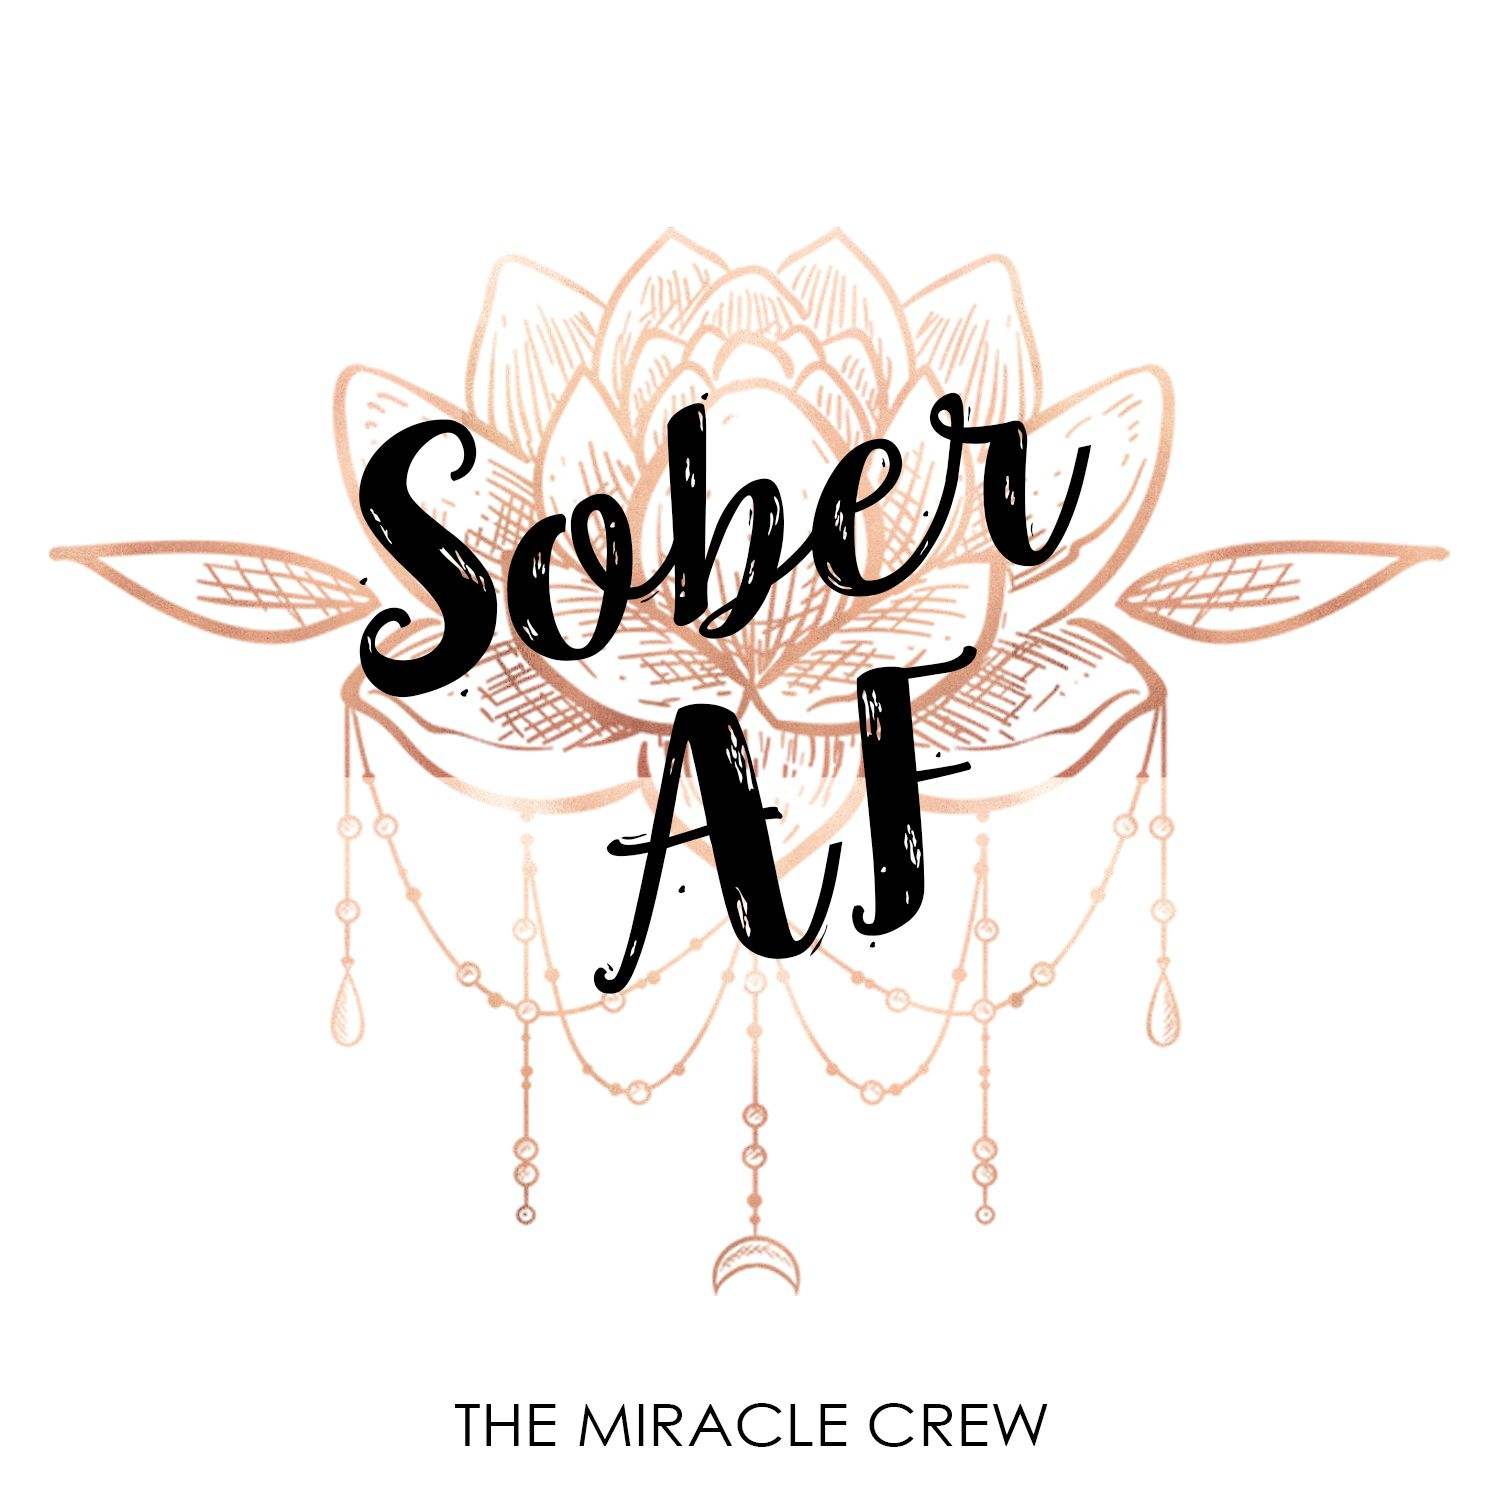 The perfect gift for those in recovery  Sobriety gift